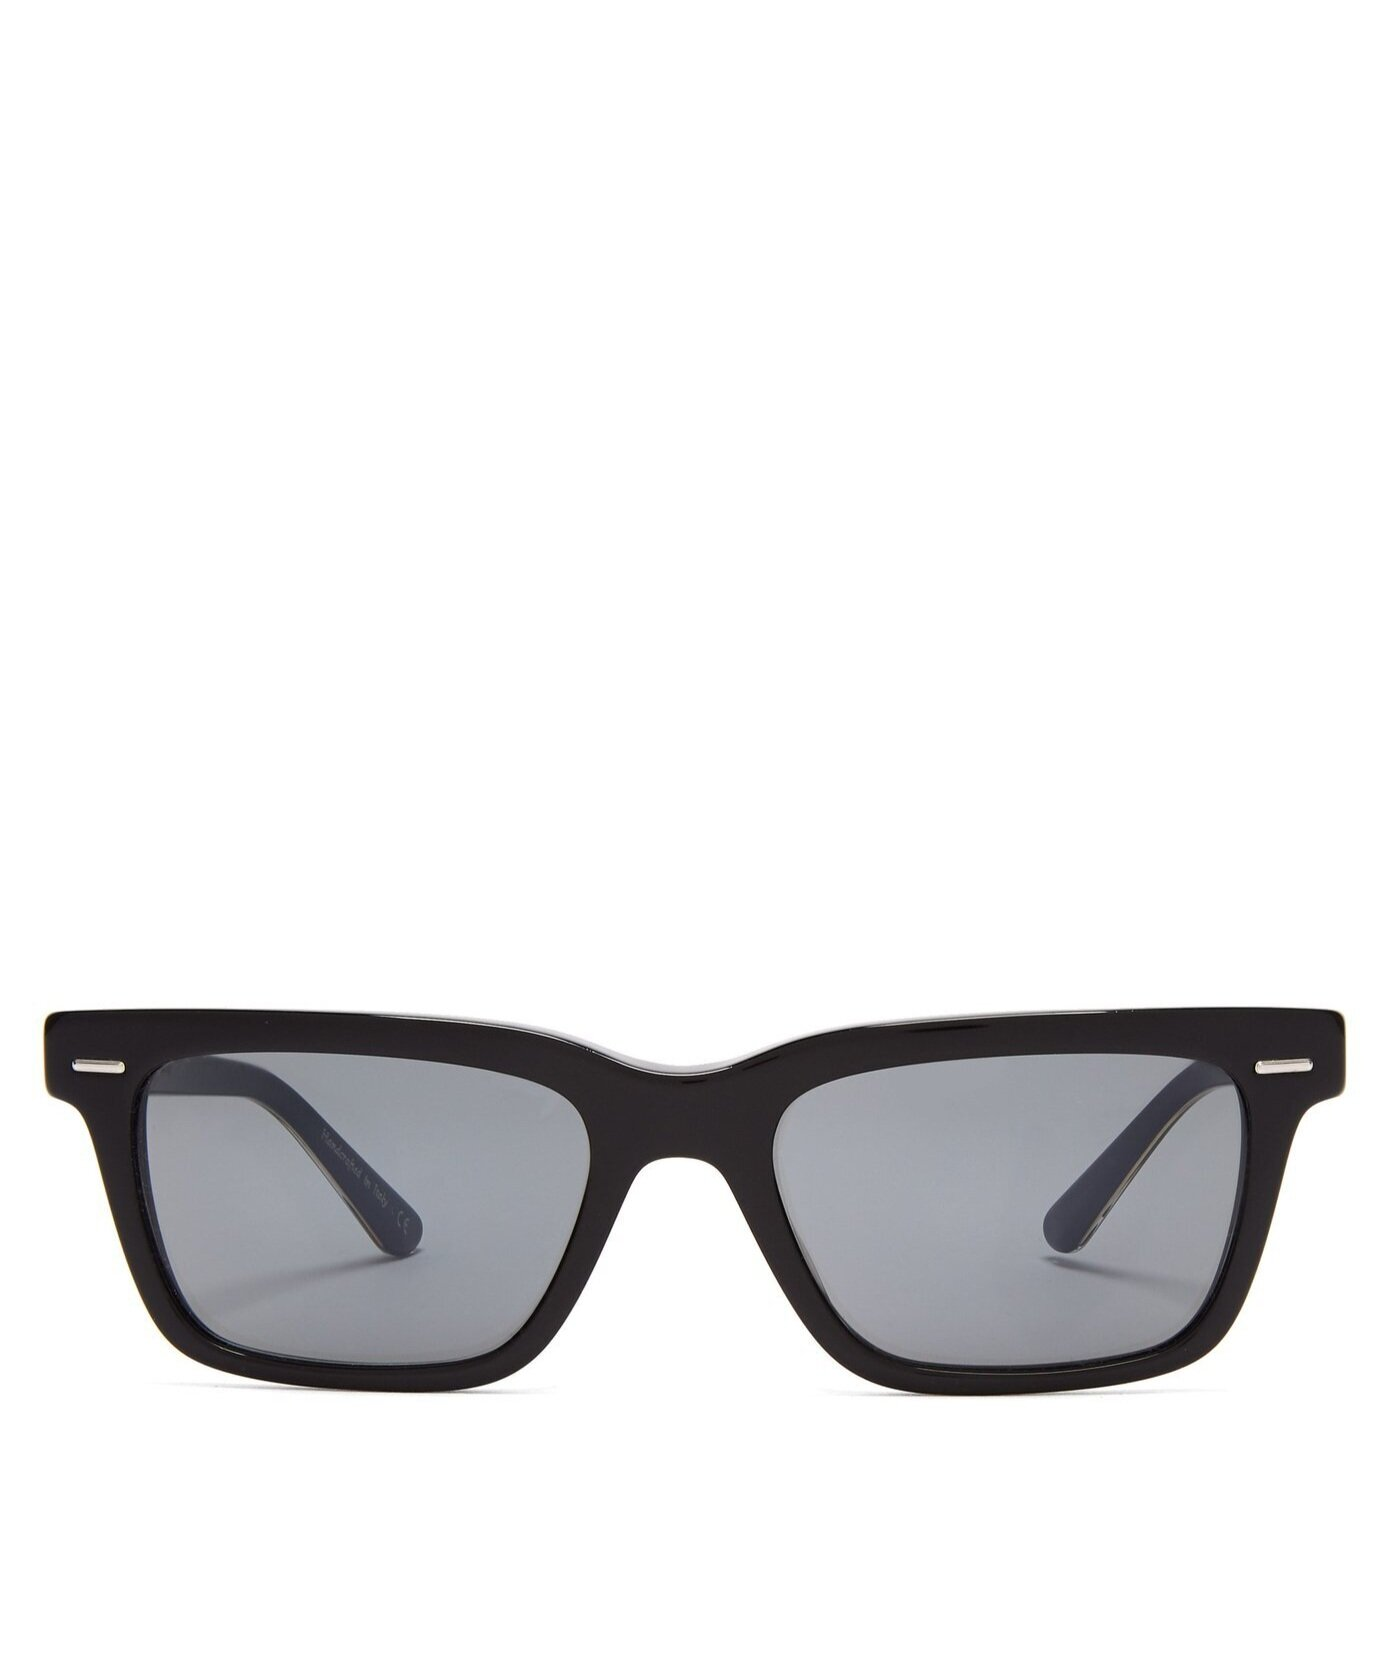 The Row x Oliver Peoples